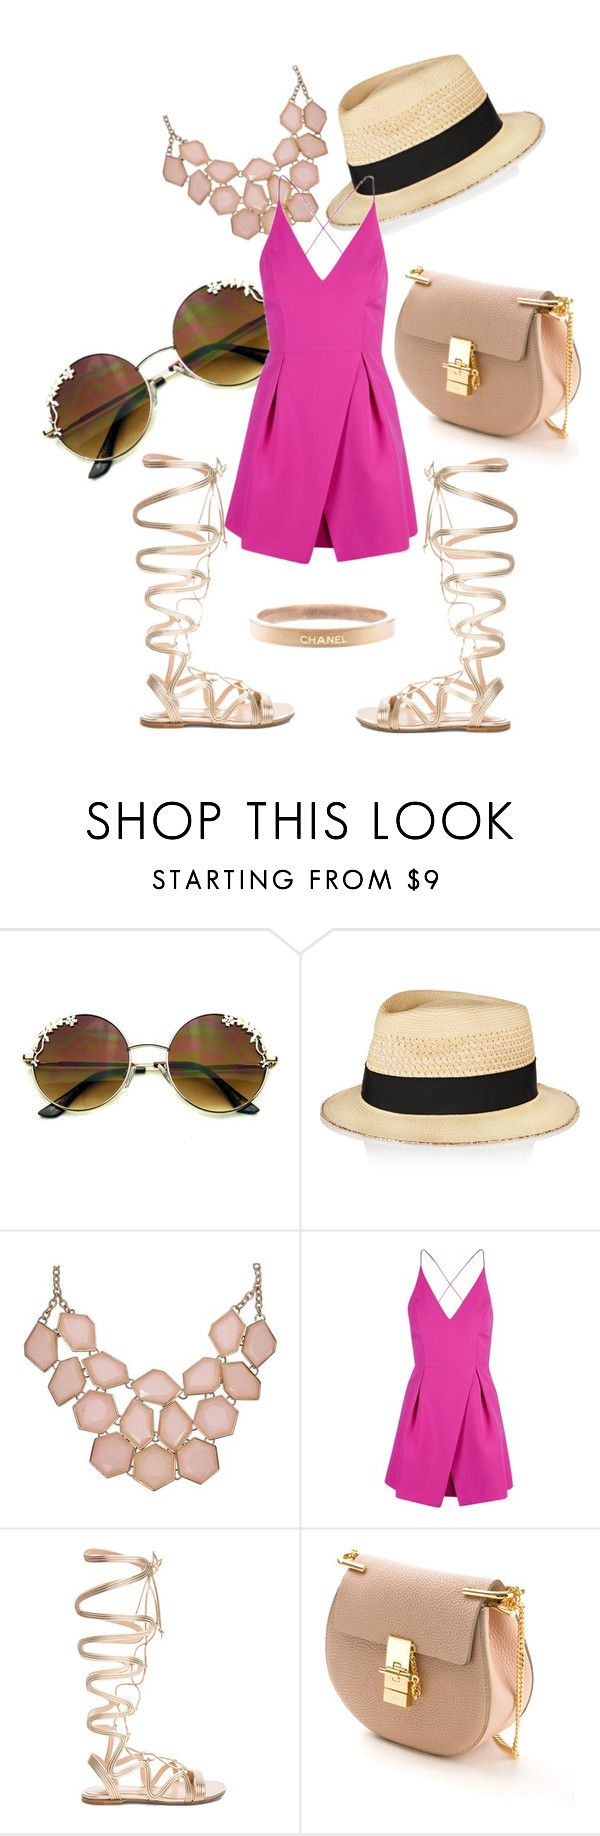 """Kesää odotellessa"" by jiroutconsulting on Polyvore featuring Eugenia Kim, Topshop, Gianvito Rossi, Chloé and Chanel"